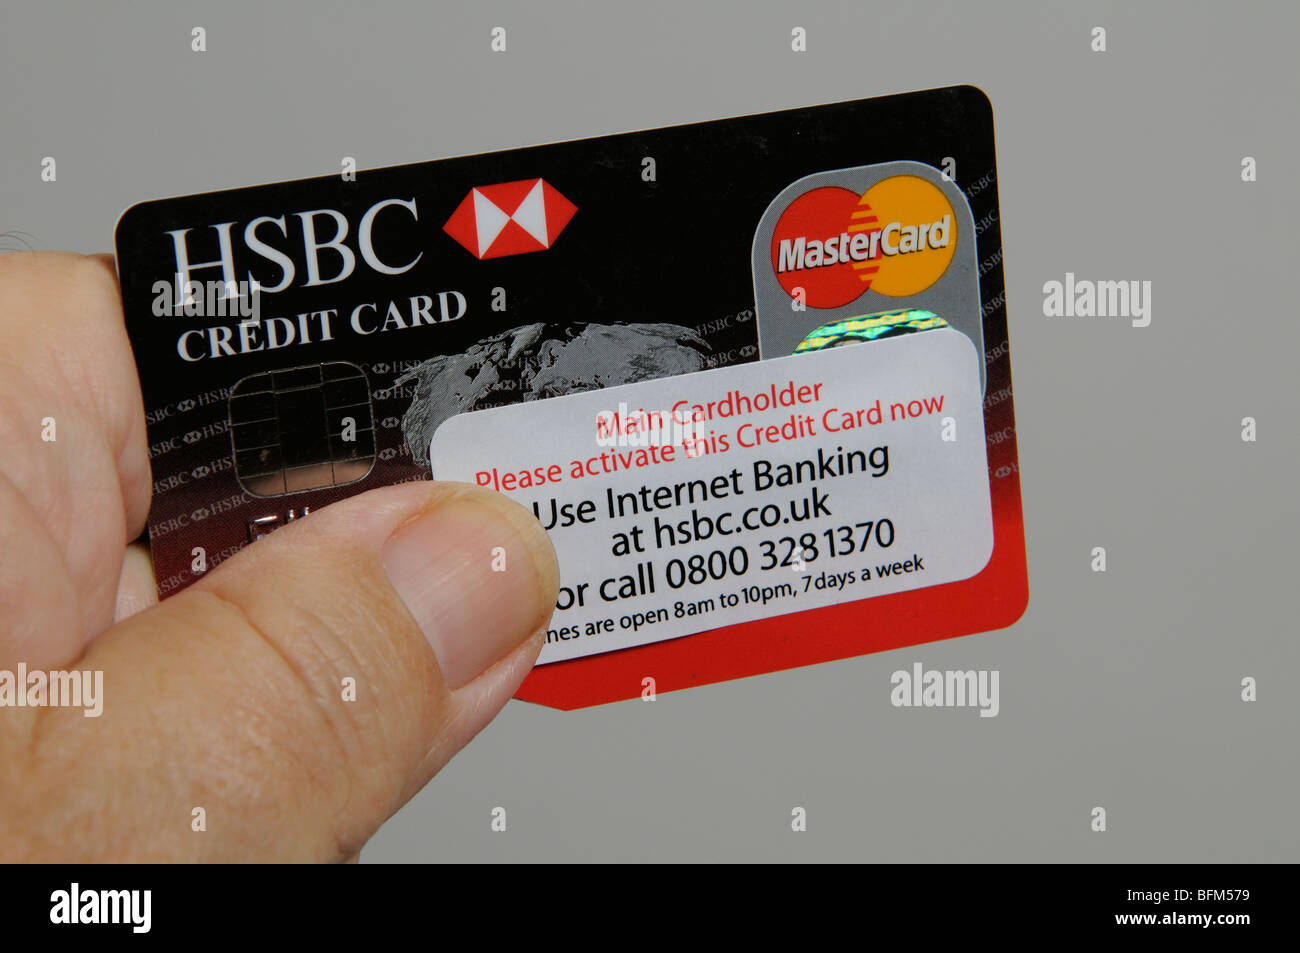 Cool hsbc business credit cards ideas business card ideas etadam nice business credit card uk pictures inspiration business card reheart Images